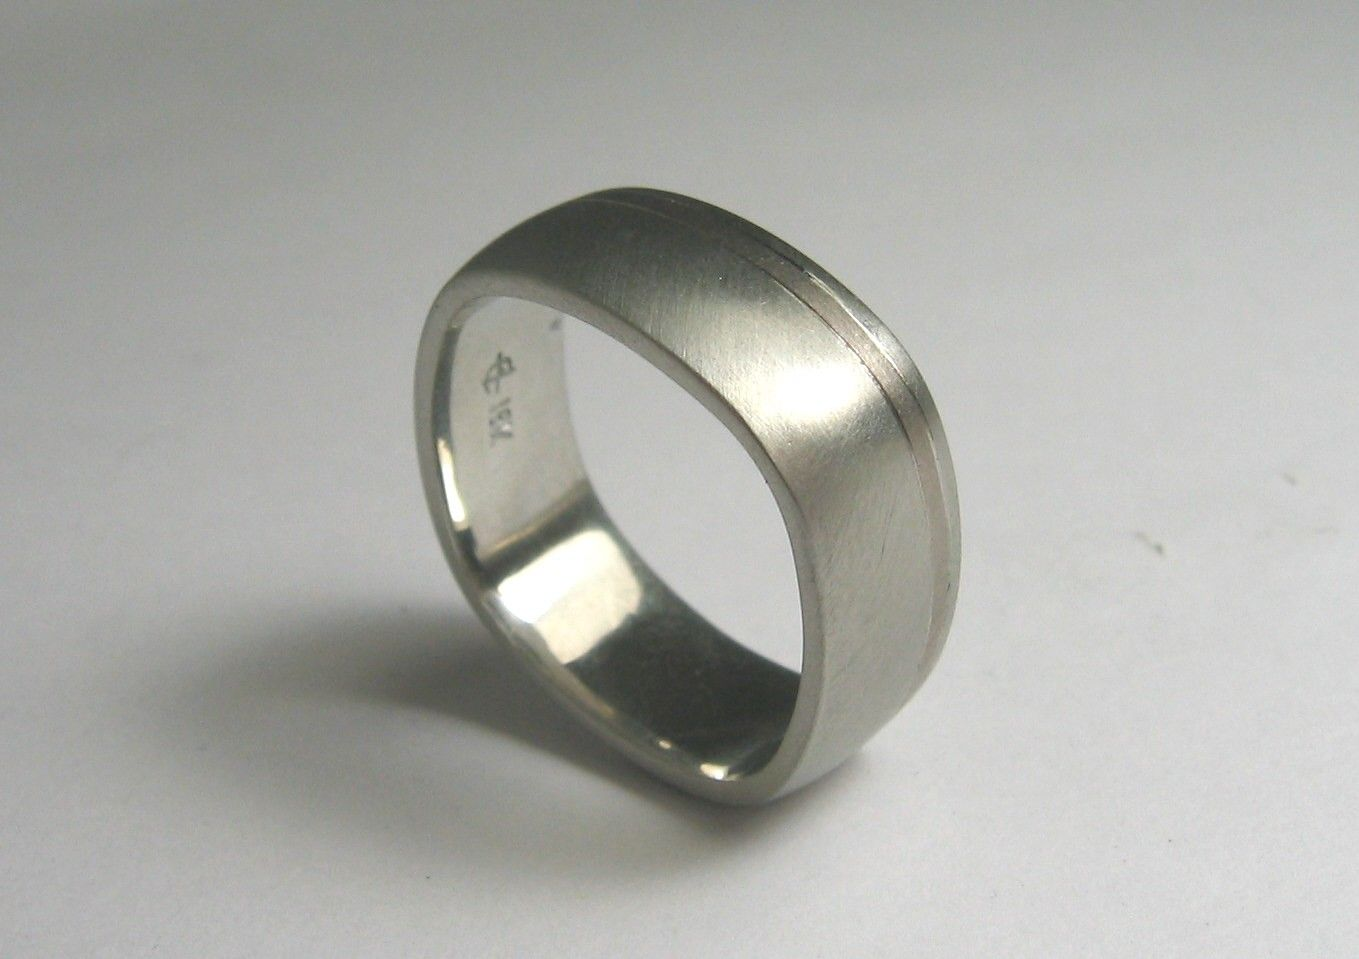 Handmade Square Shaped Wedding Band For Men By Wearable Art